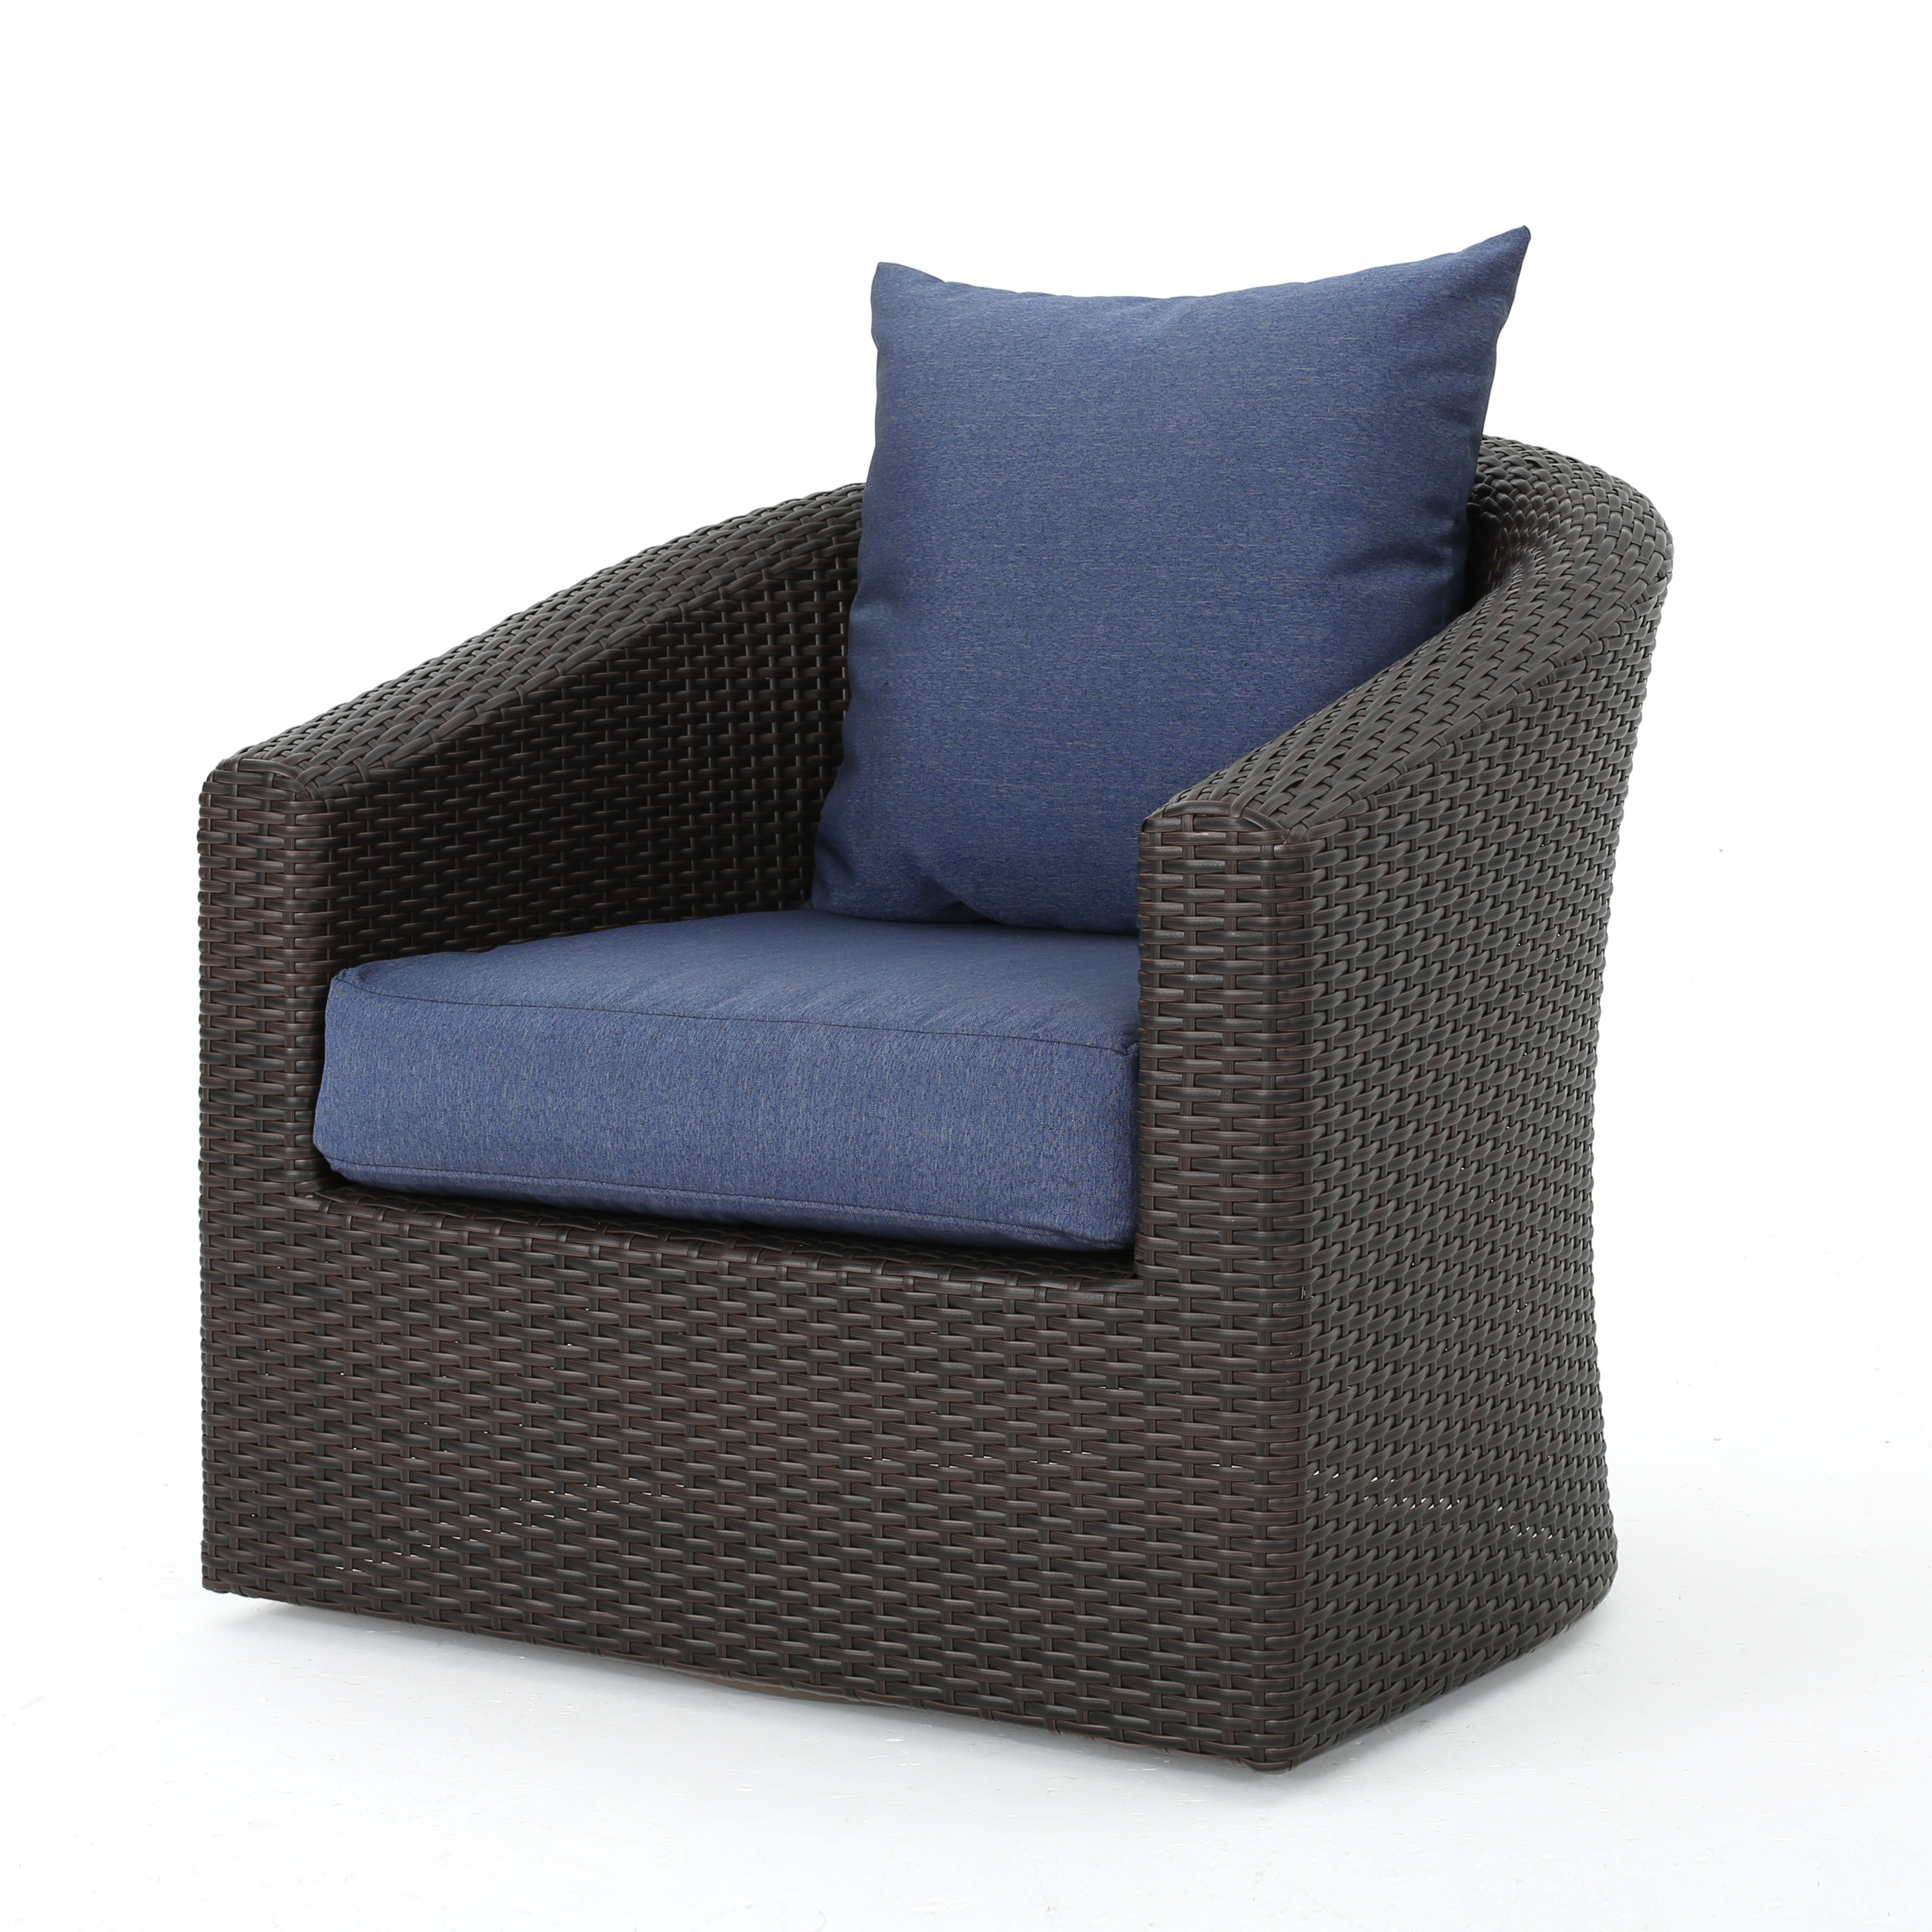 swivel club chair thomas potty dillard outdoor aluminum framed wicker with water resistant cushions multibrown and navy